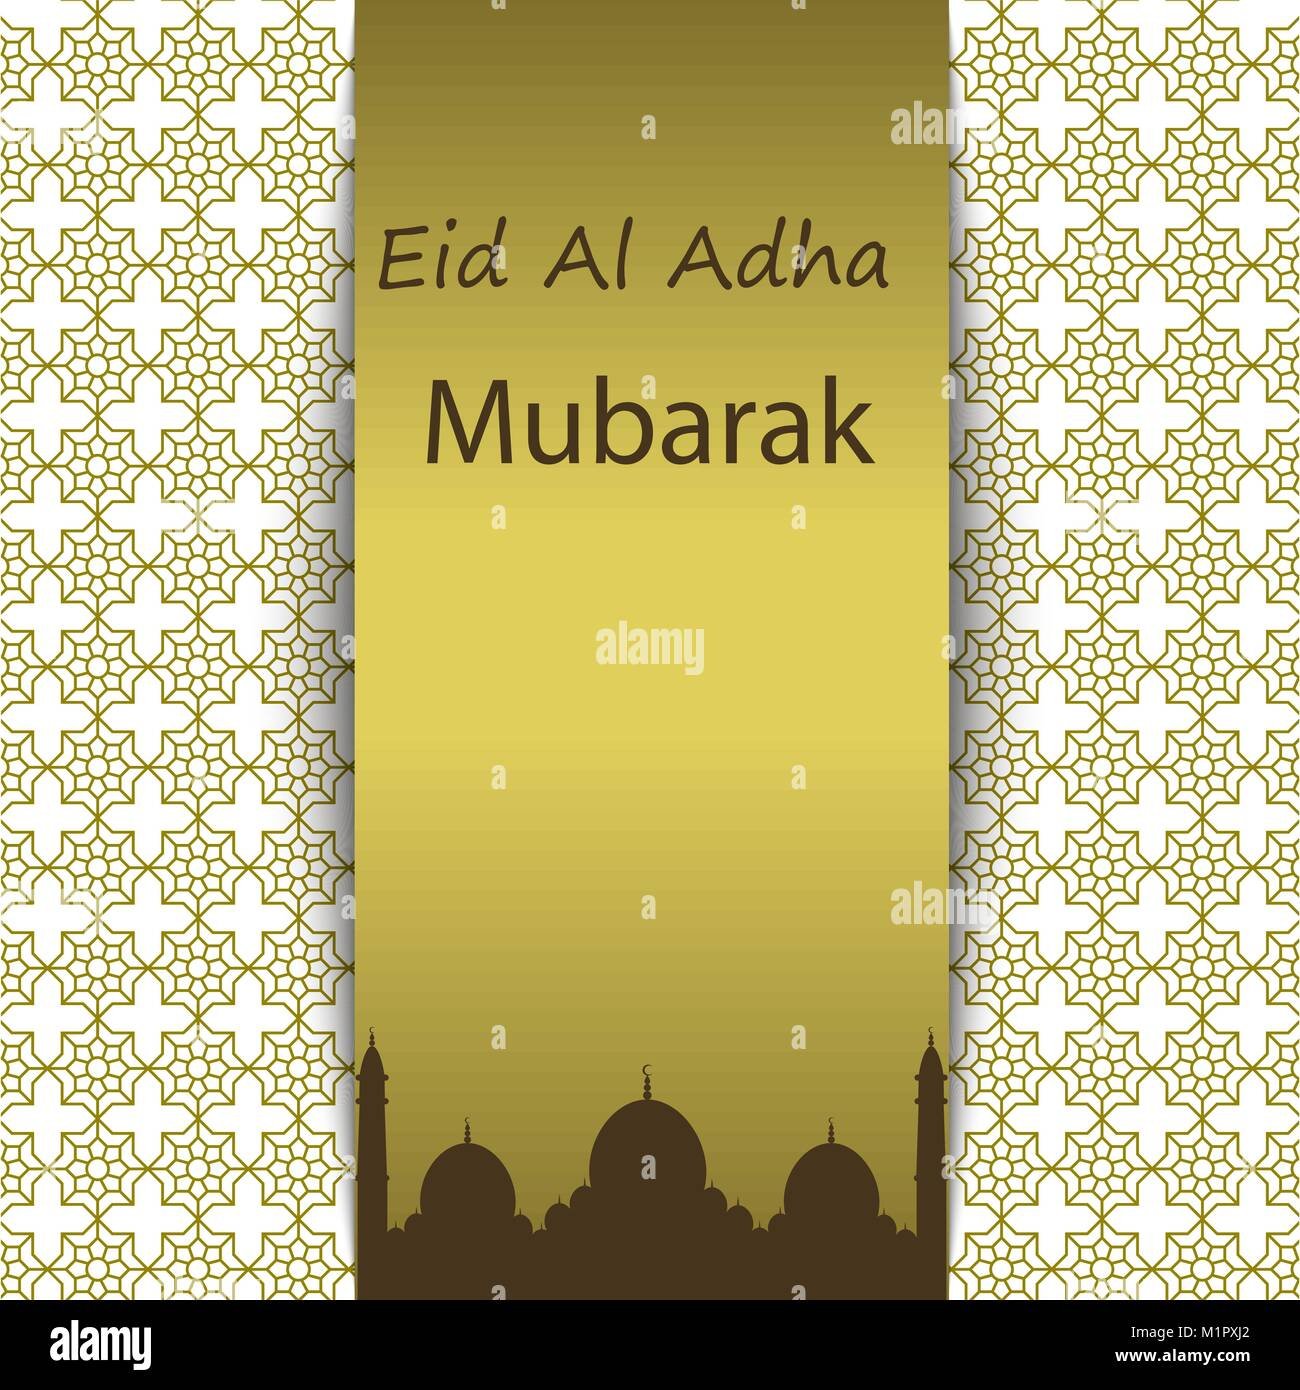 Islamic Festival Of Sacrifice Eid Al Adha Mubarak Greeting Card